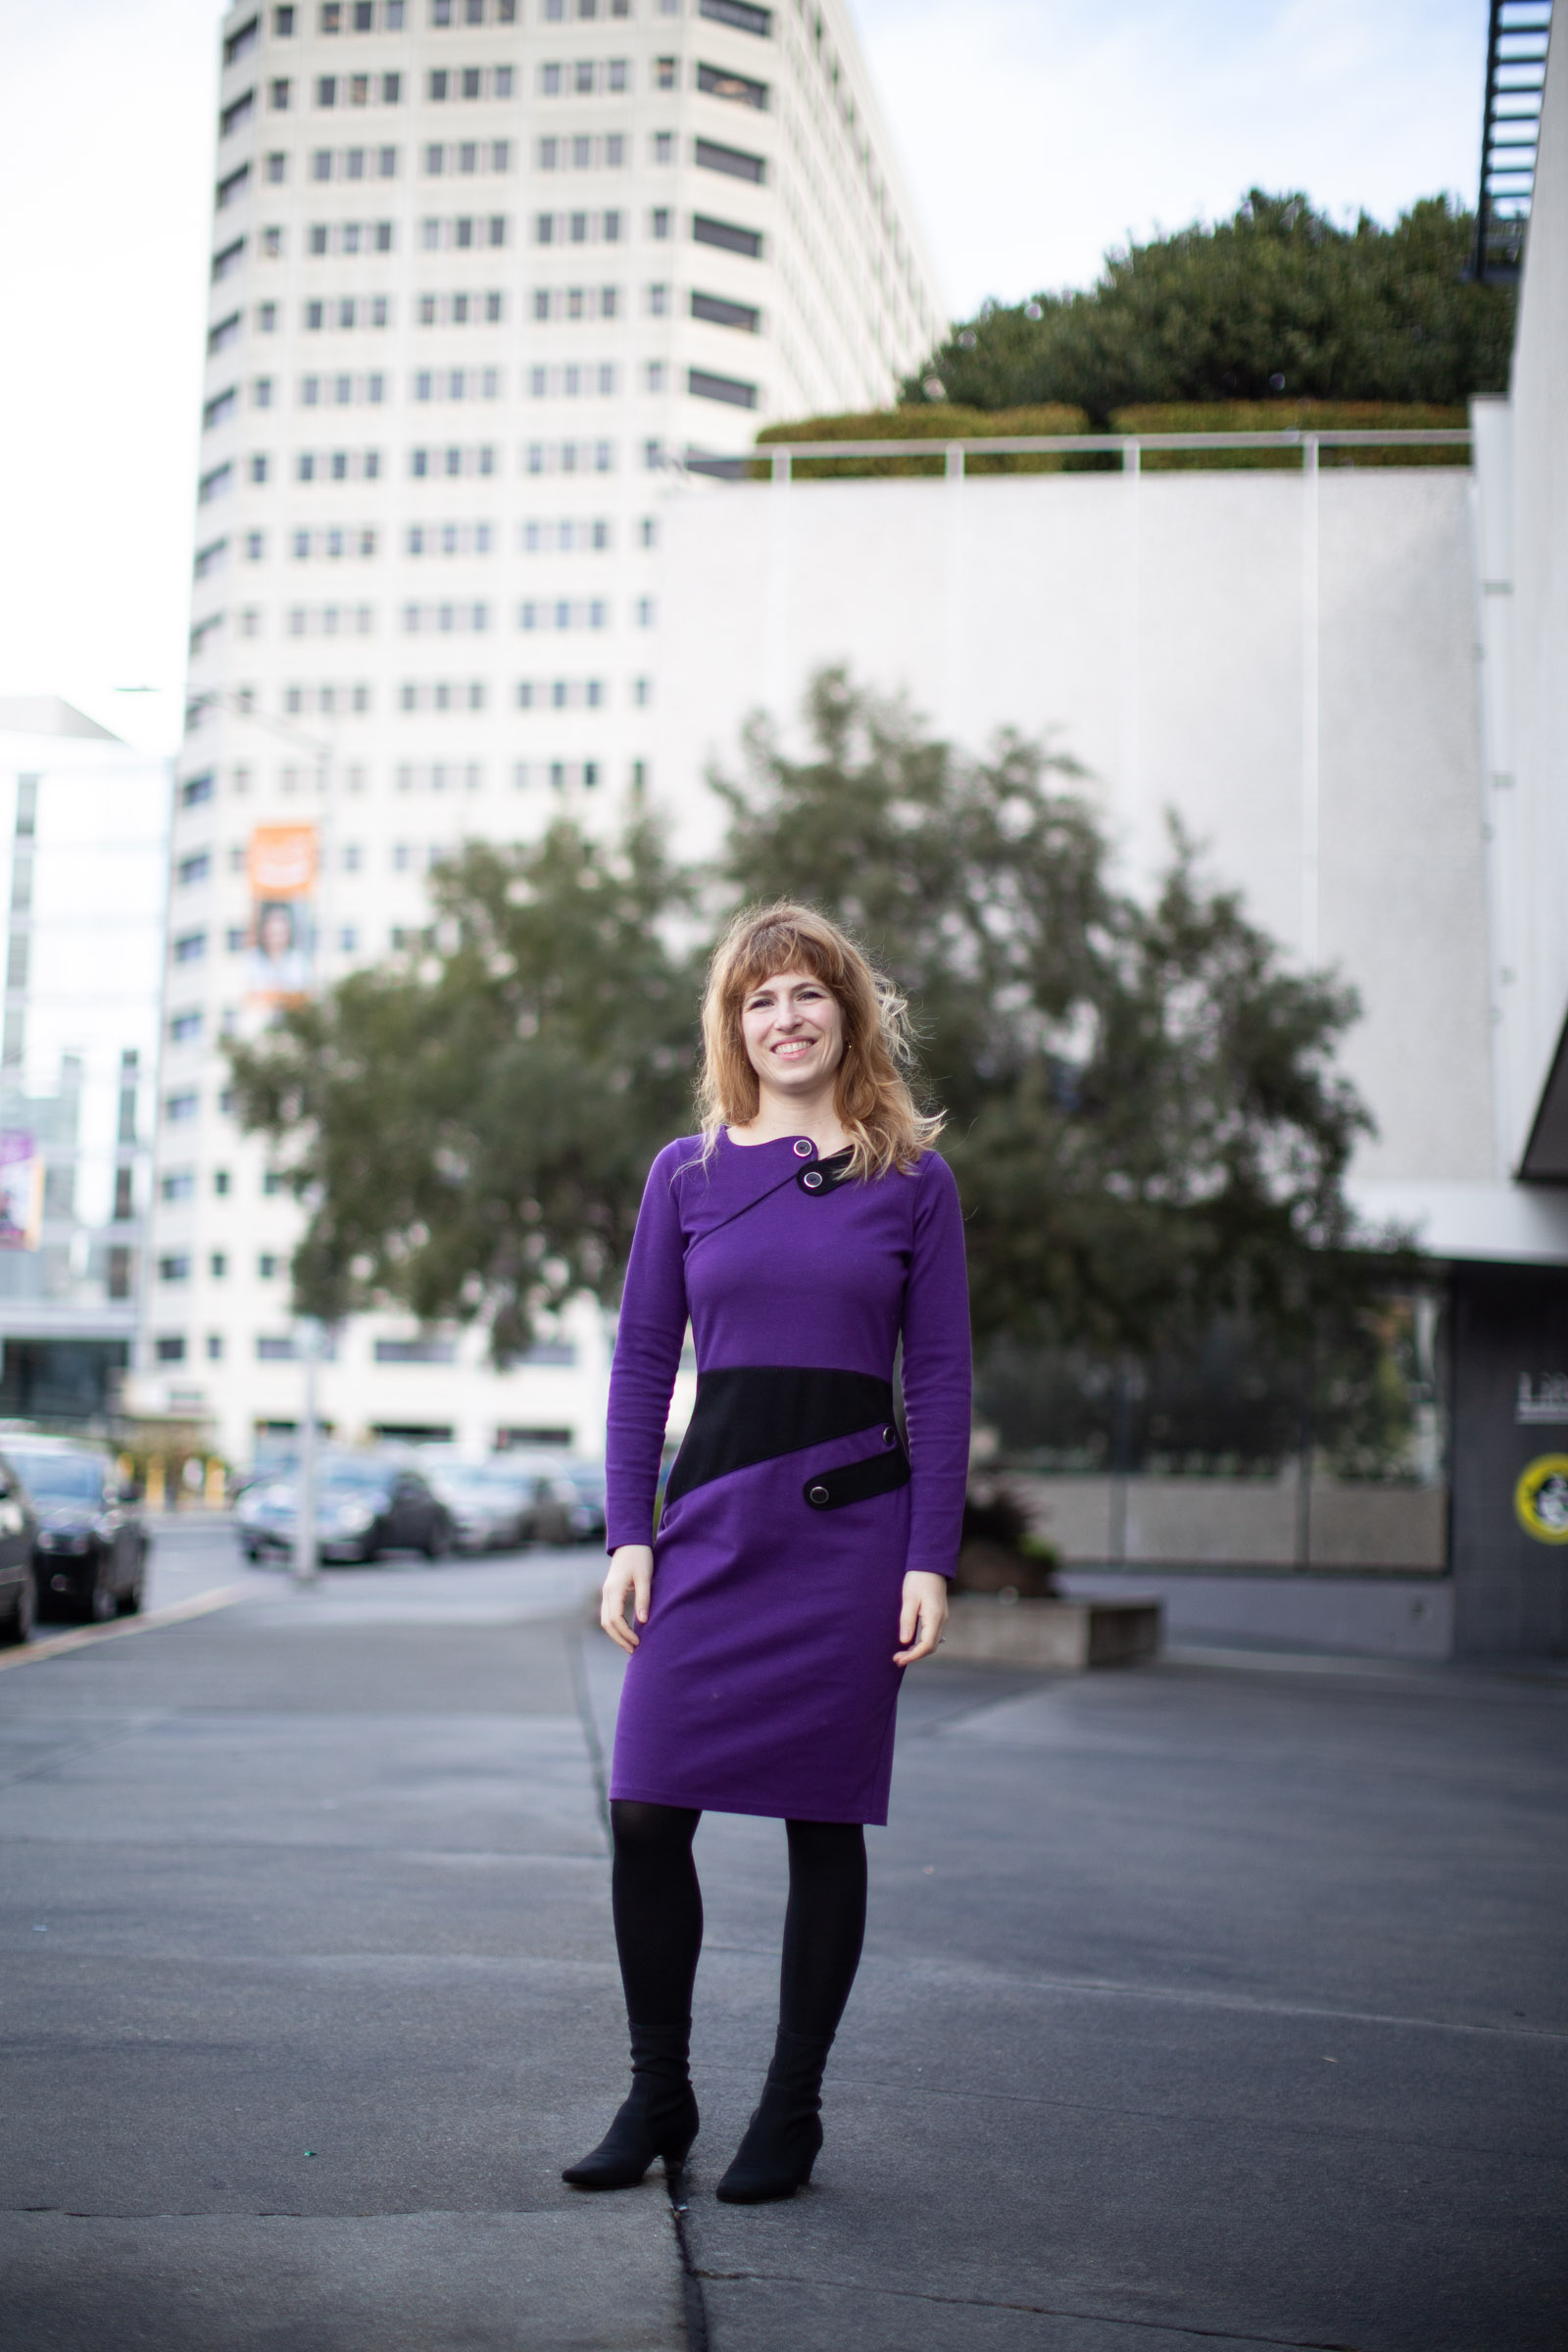 Tess Posner in downtown Oakland. Photo by Tumay Aslay